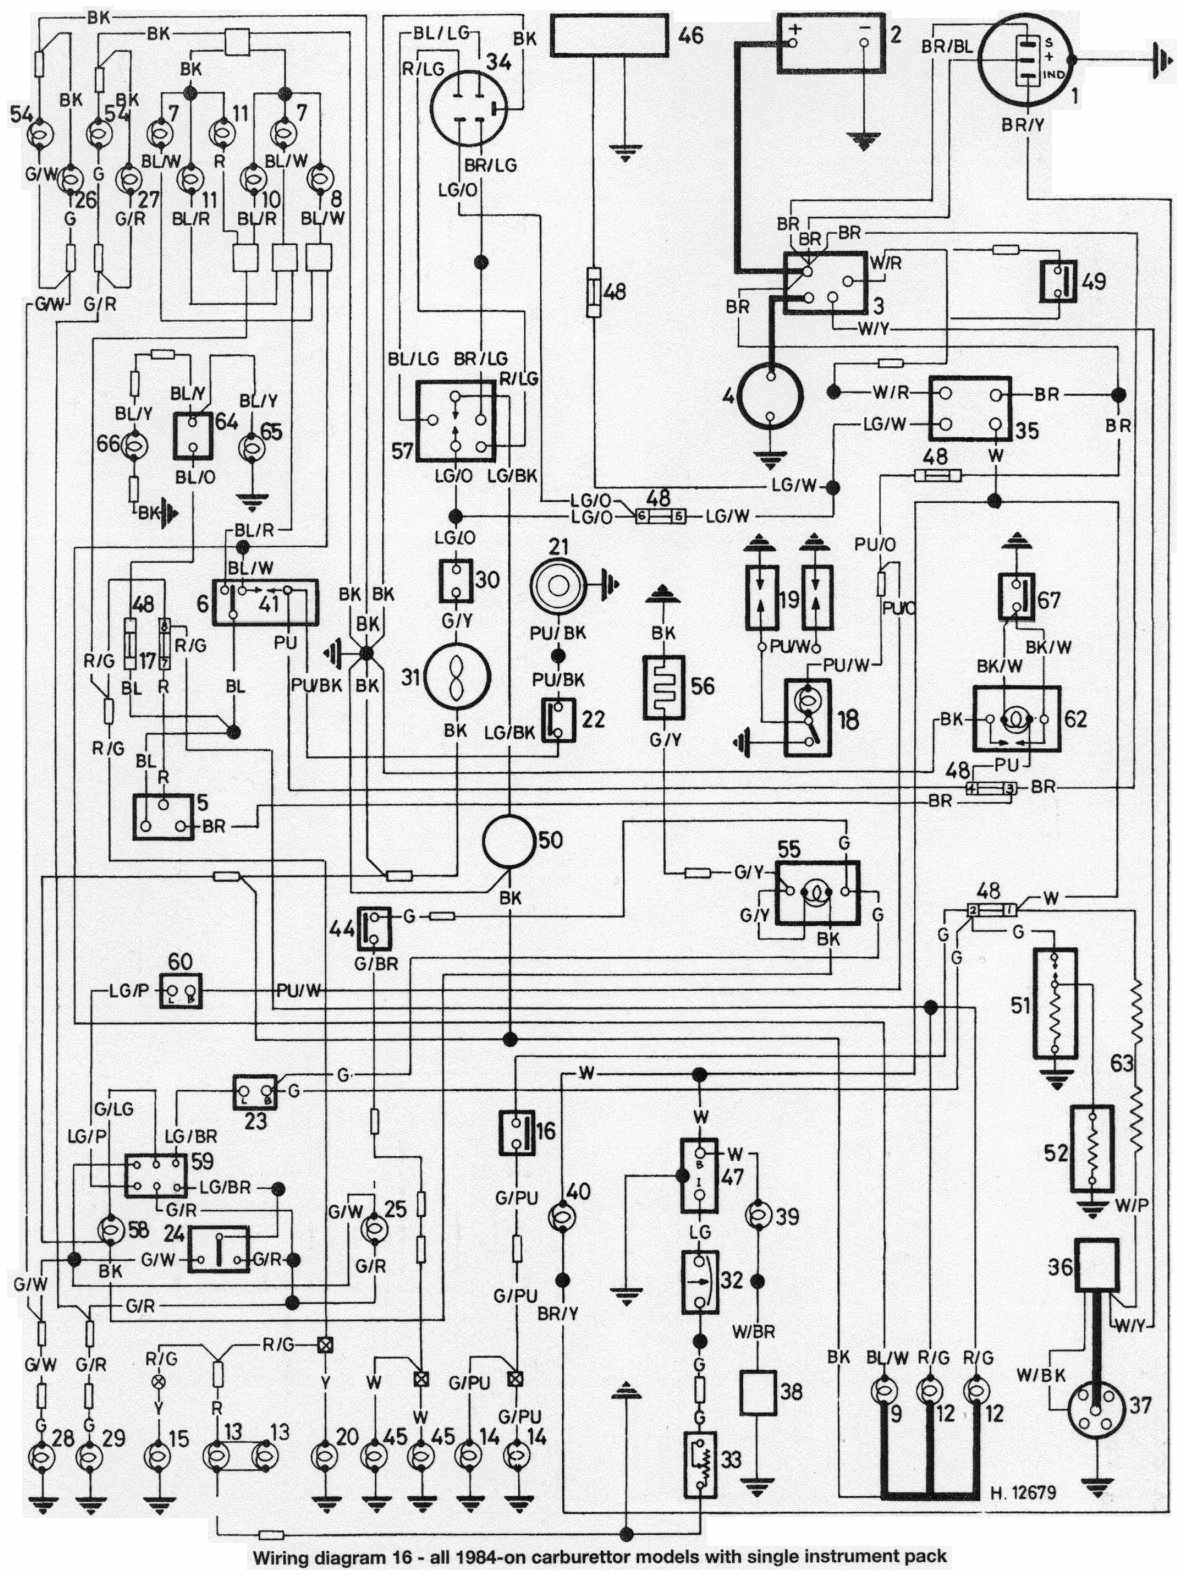 electrical diagram mini cooper today wiring diagram 2003 Mini Cooper Fuse Diagram mini car manuals, wiring diagrams pdf \u0026 fault codes buick century diagram electrical diagram mini cooper